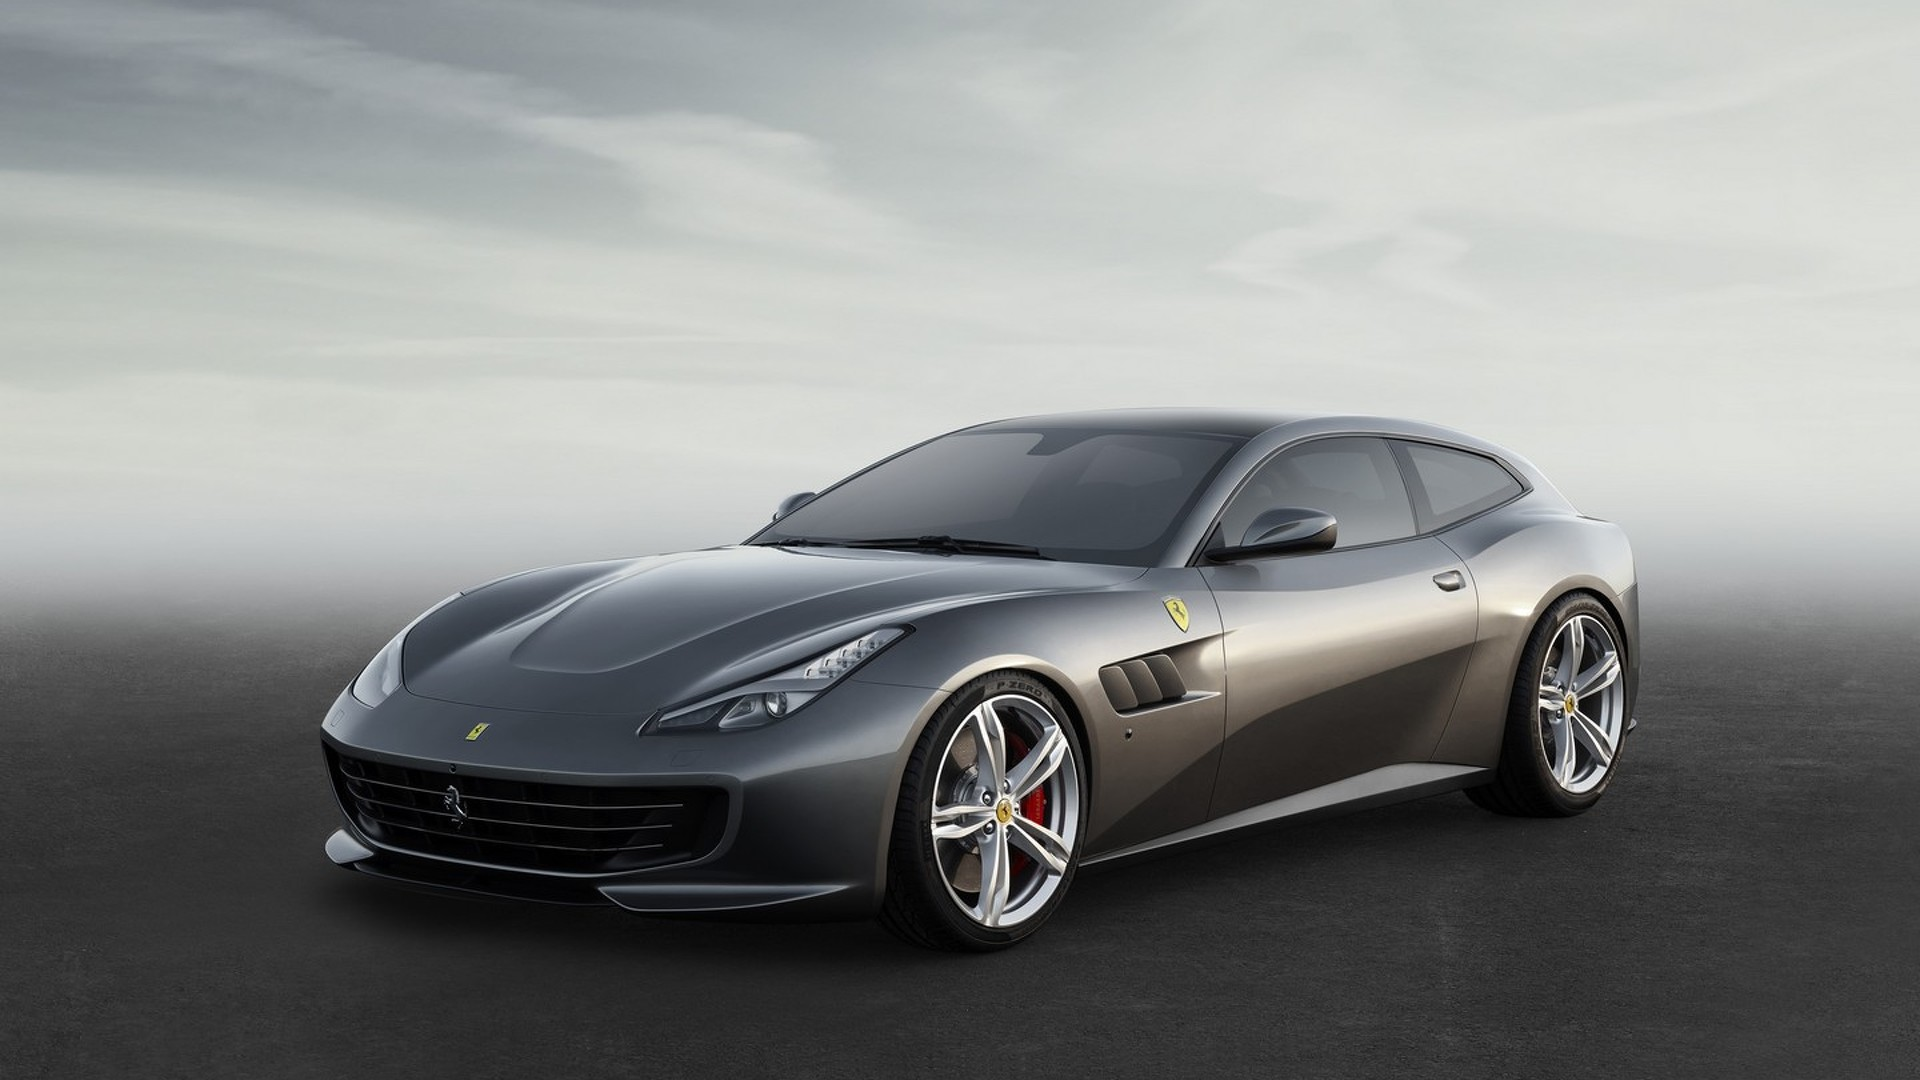 Ferrari GTC4Lusso replaces FF and brings 680 hp